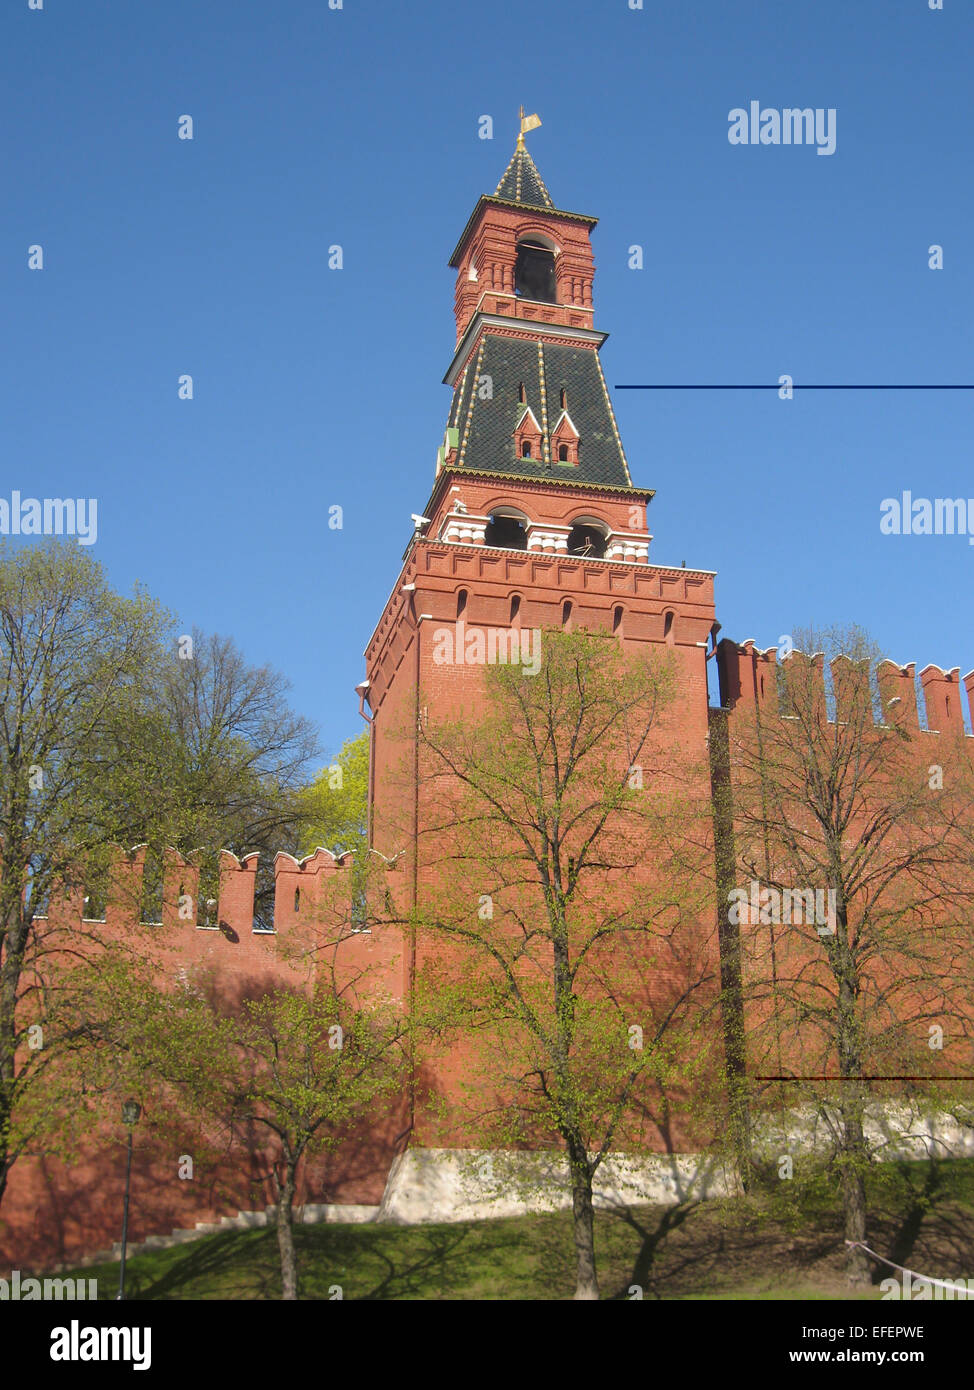 Moscow, one of the towers of Kremlin fortress. Date of recording 27.04.2008. - Stock Image